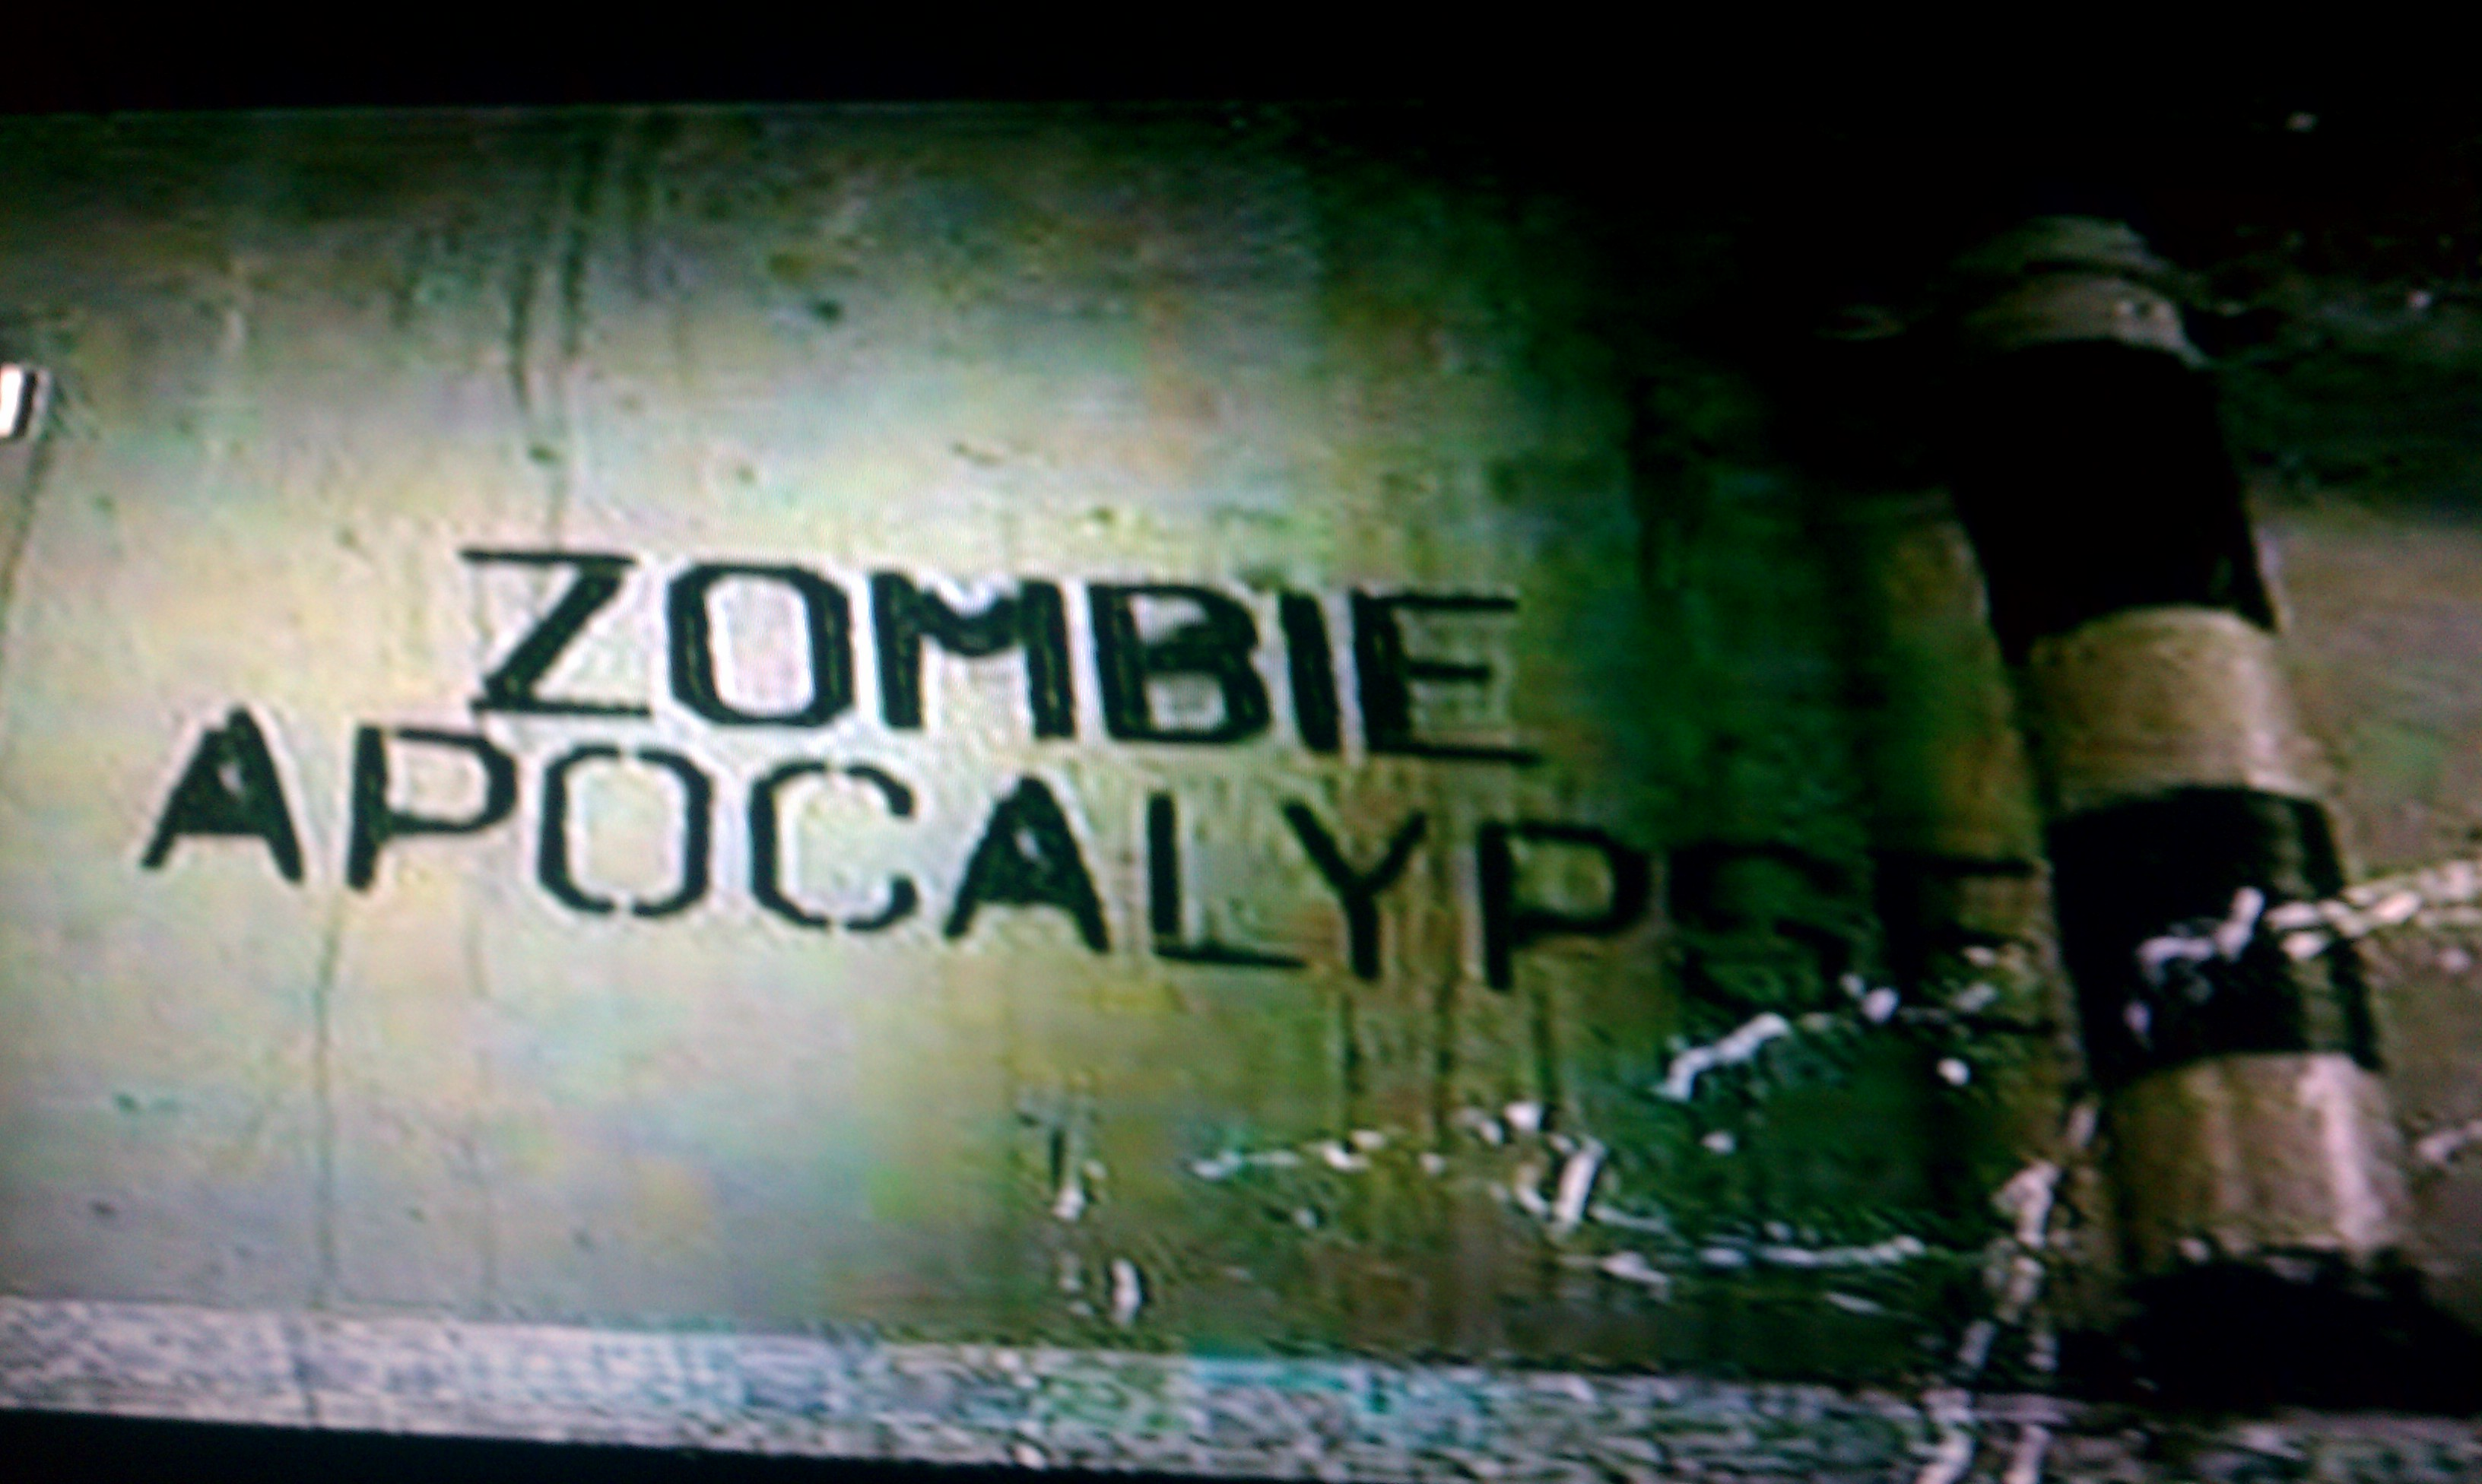 Yet Another Zombie Apocalypse in My Blog